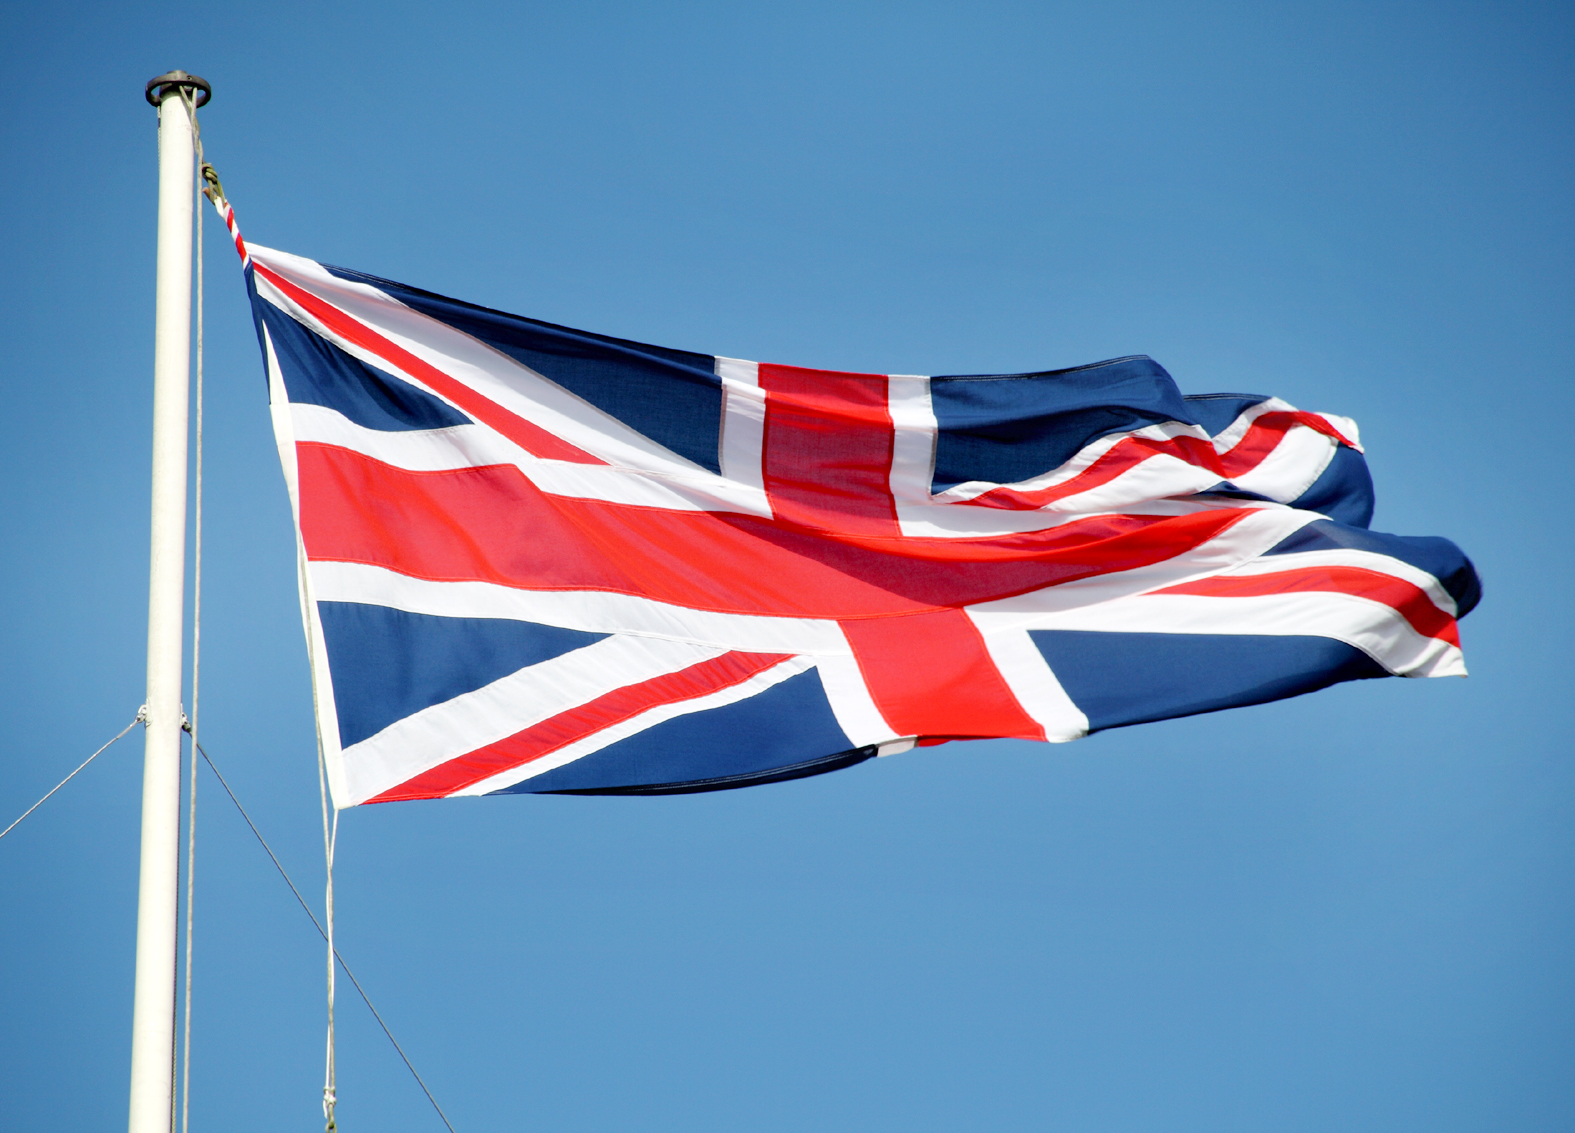 Bolton schools WILL be encouraged to fly union flag and sing national anthem